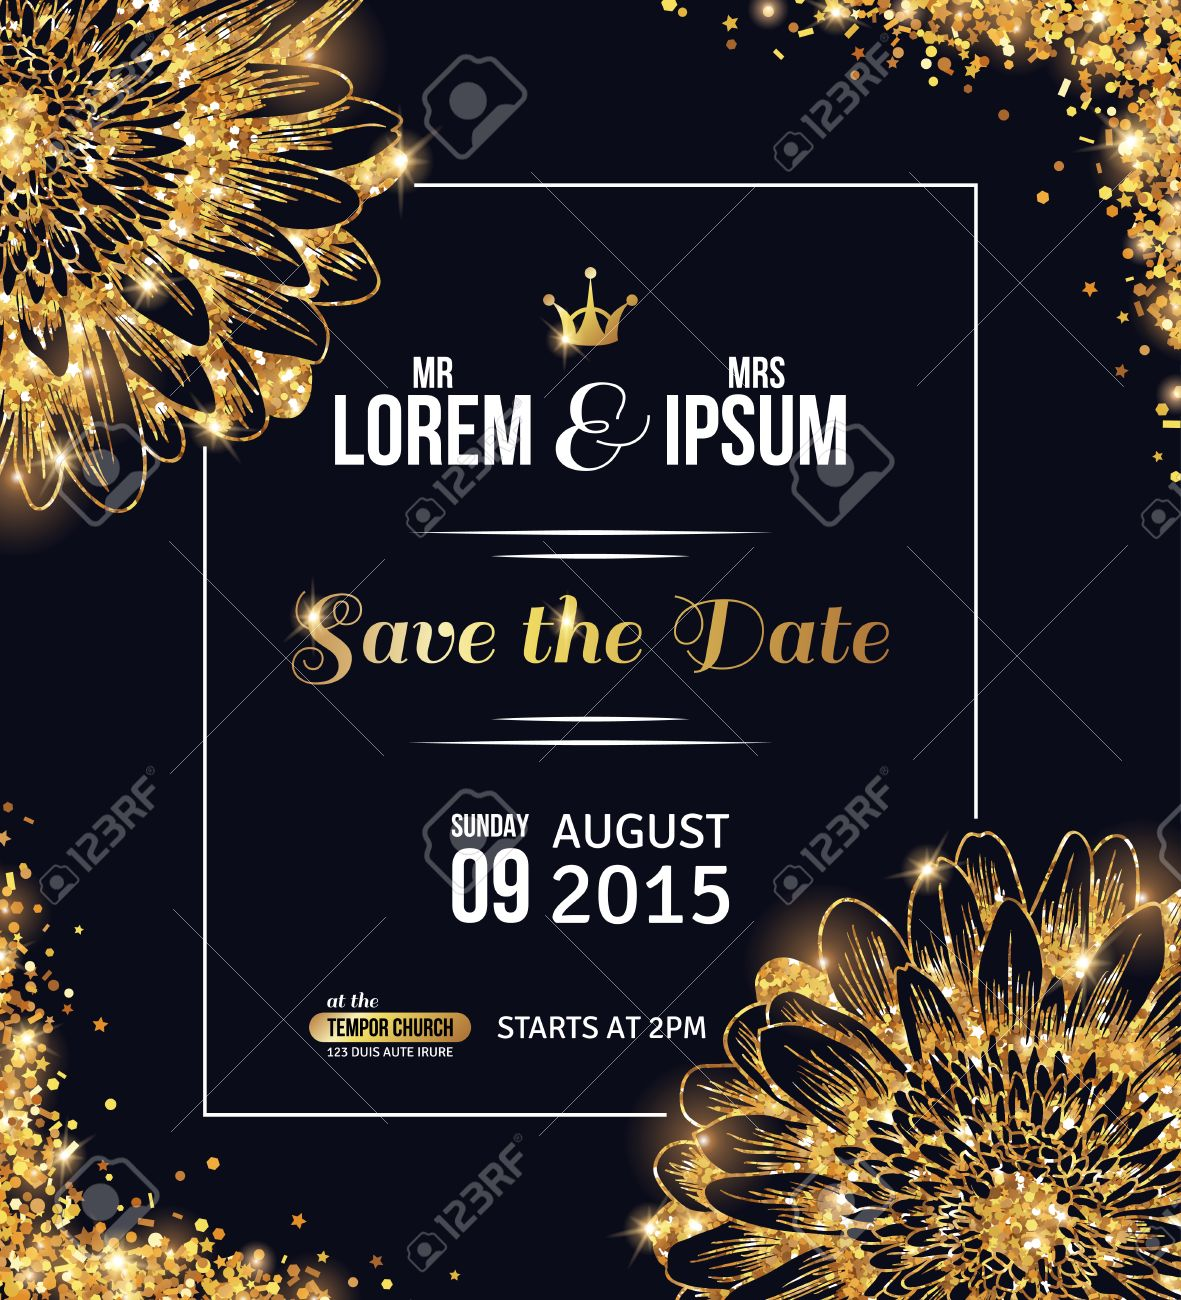 vector wedding invitation card design gold confetti with flowers and black background vector illustration save the date typographic template for your